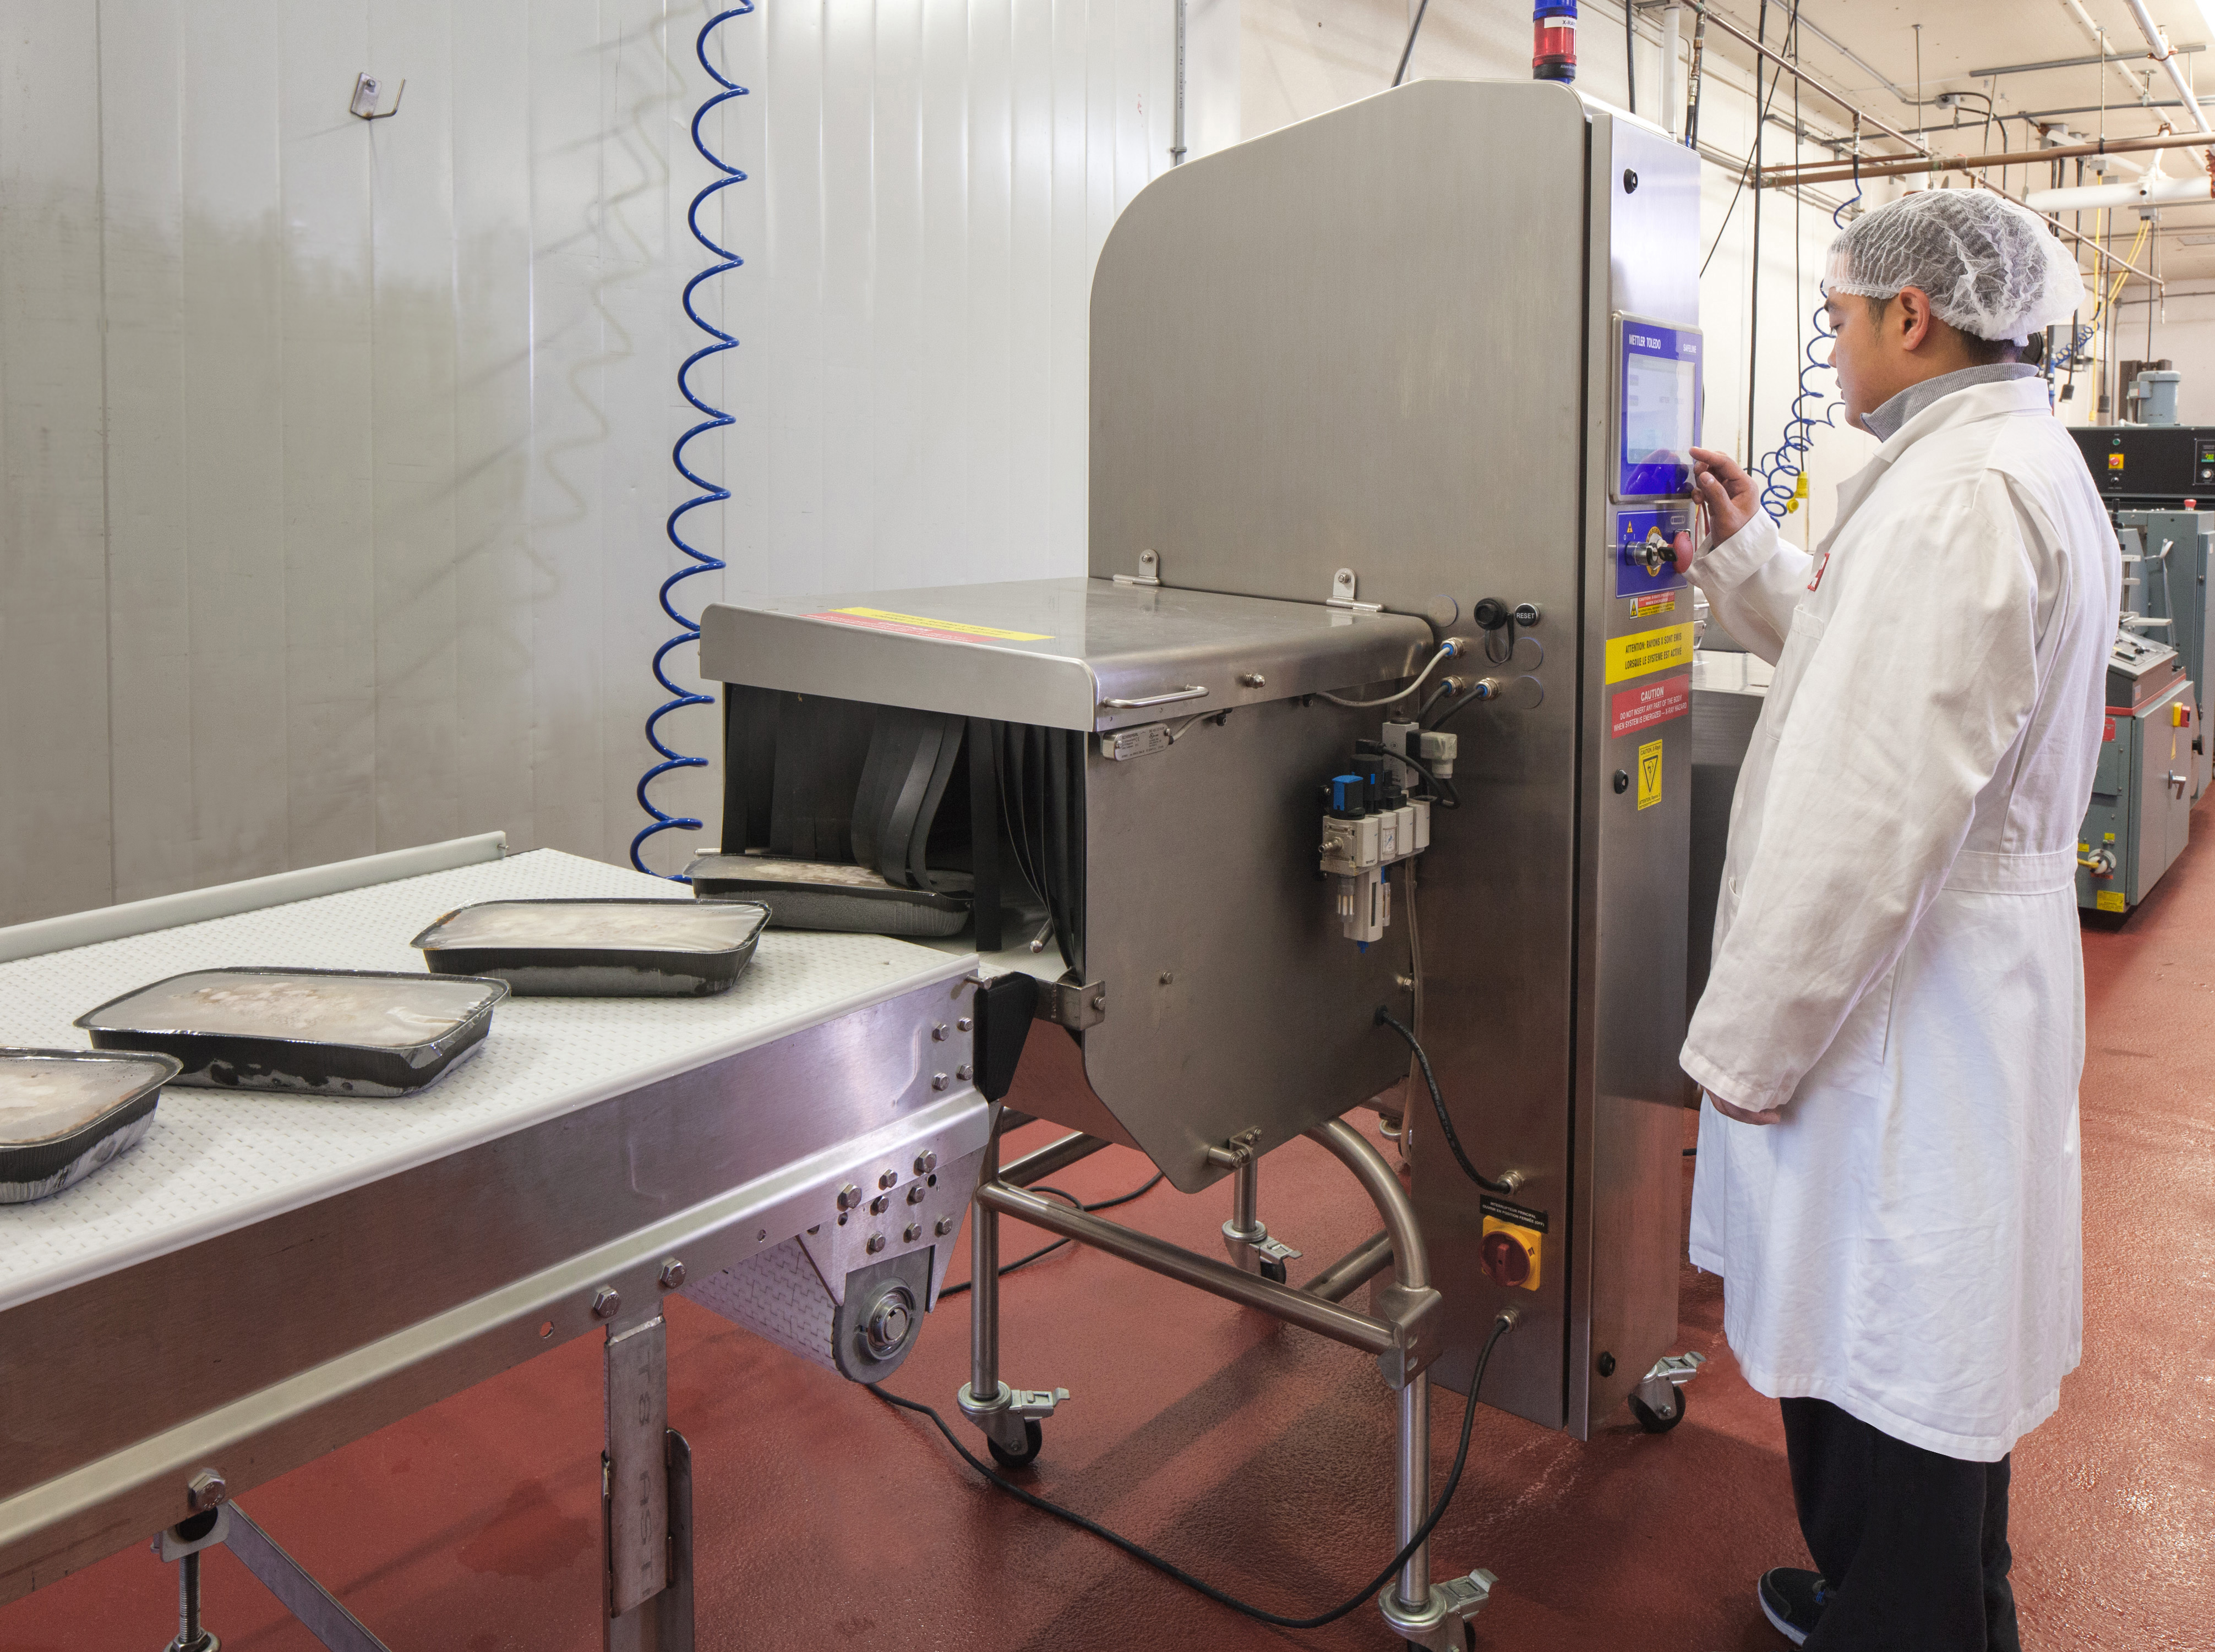 X-ray - product inspection of lasagnes Mettler Toledo